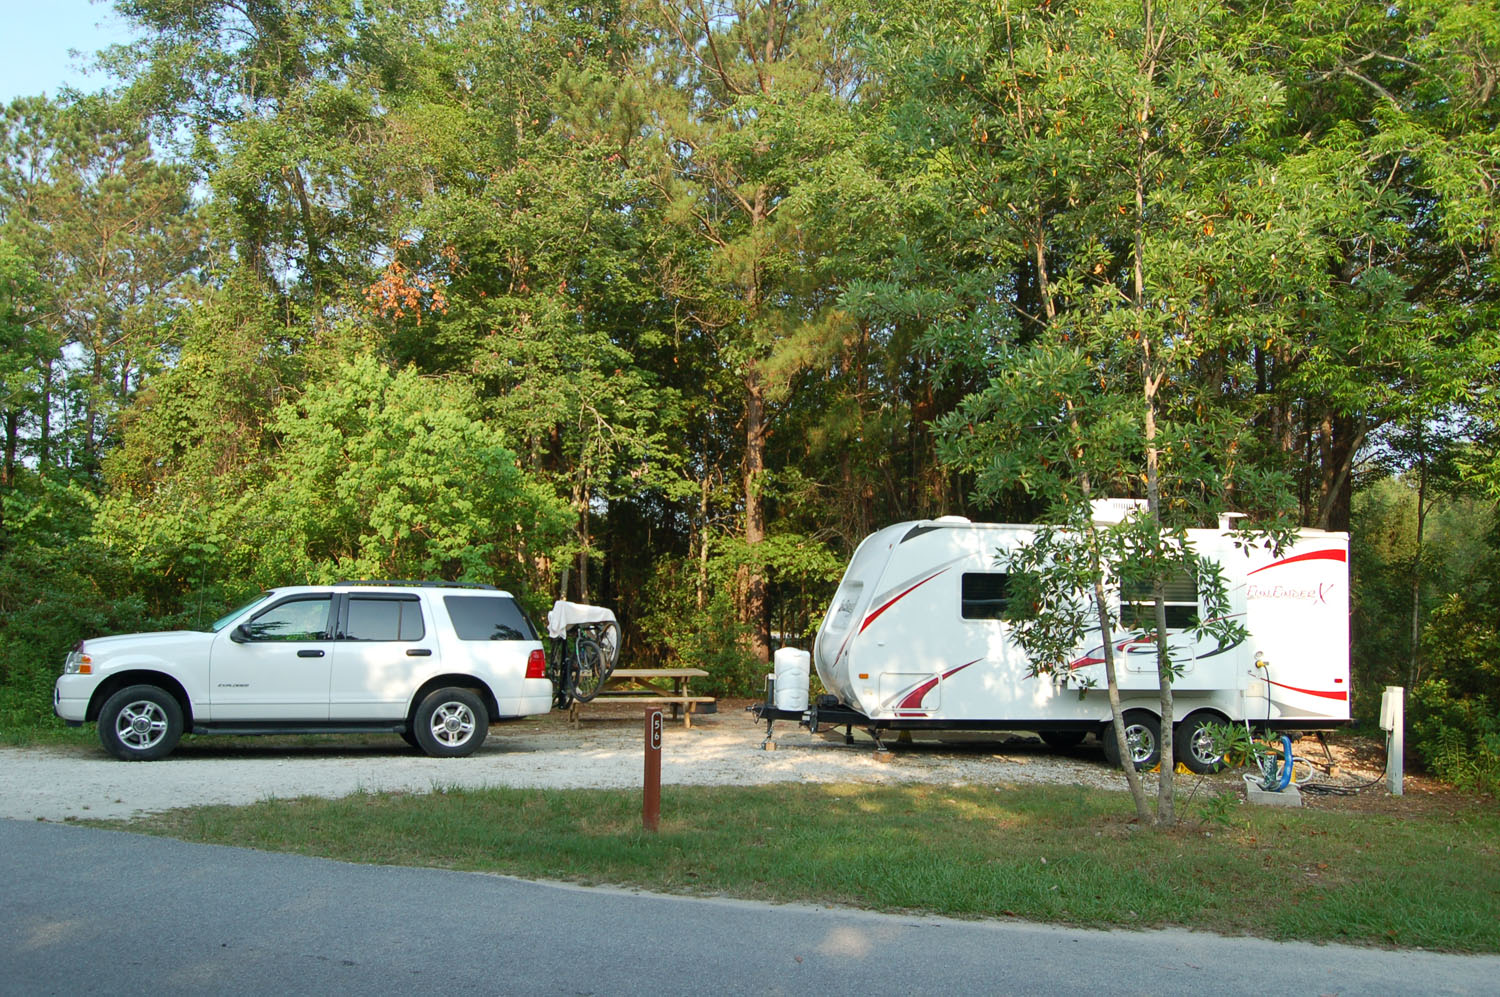 Image of campsite #56 at the Campground at James Island County Park